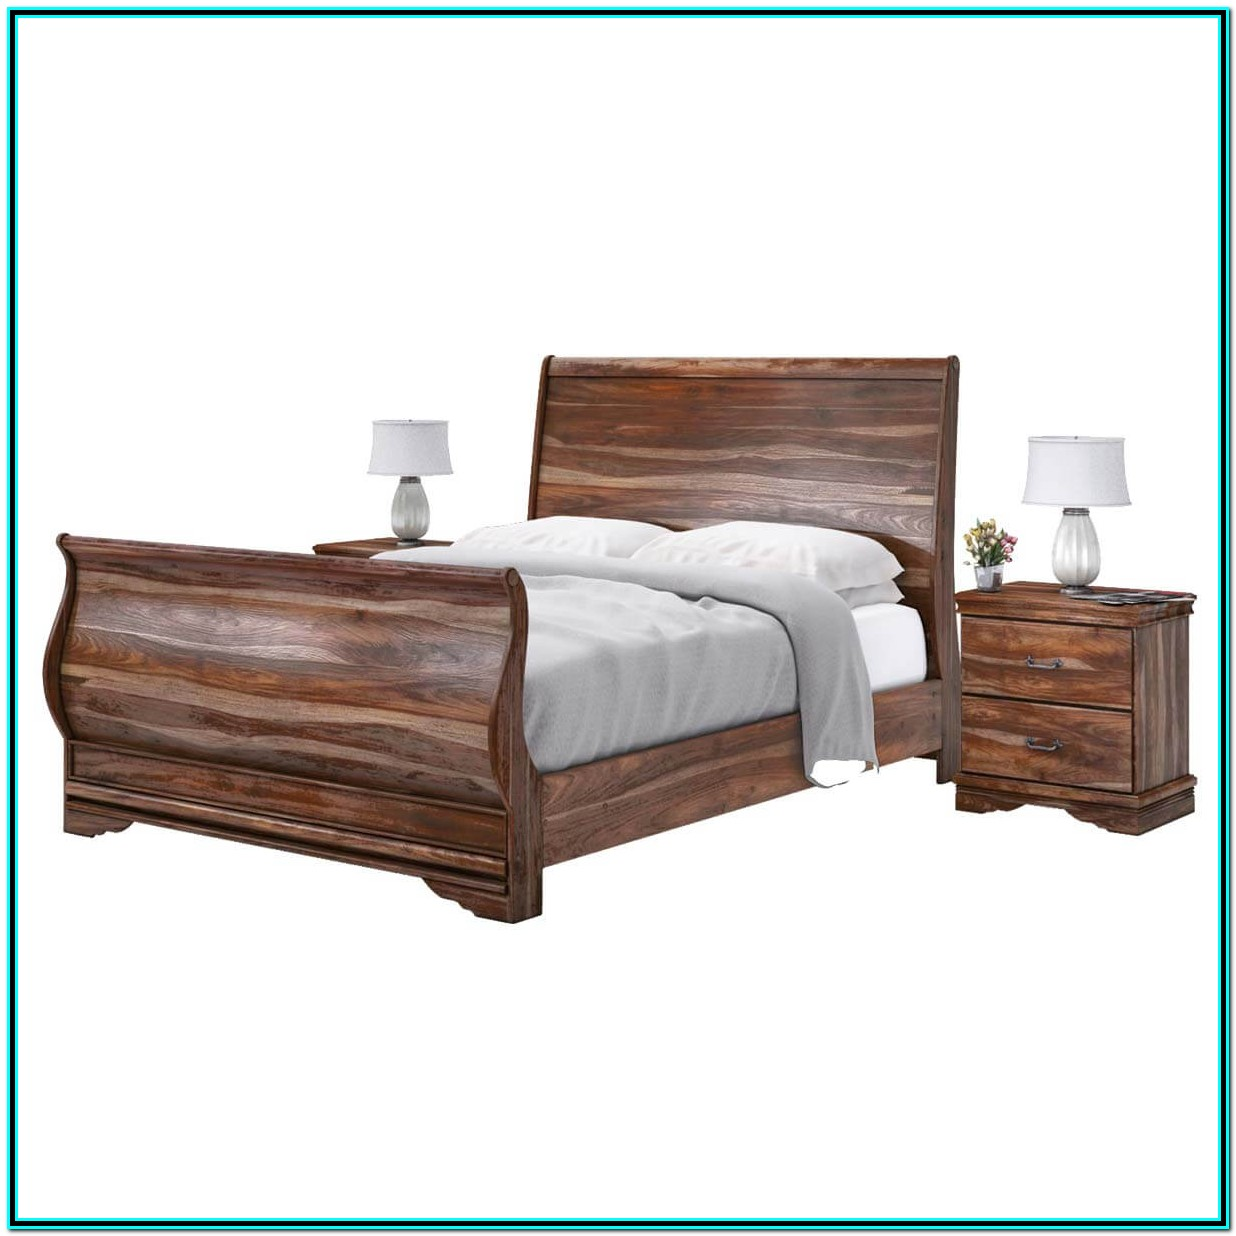 Solid Wood Bed Frame King Size